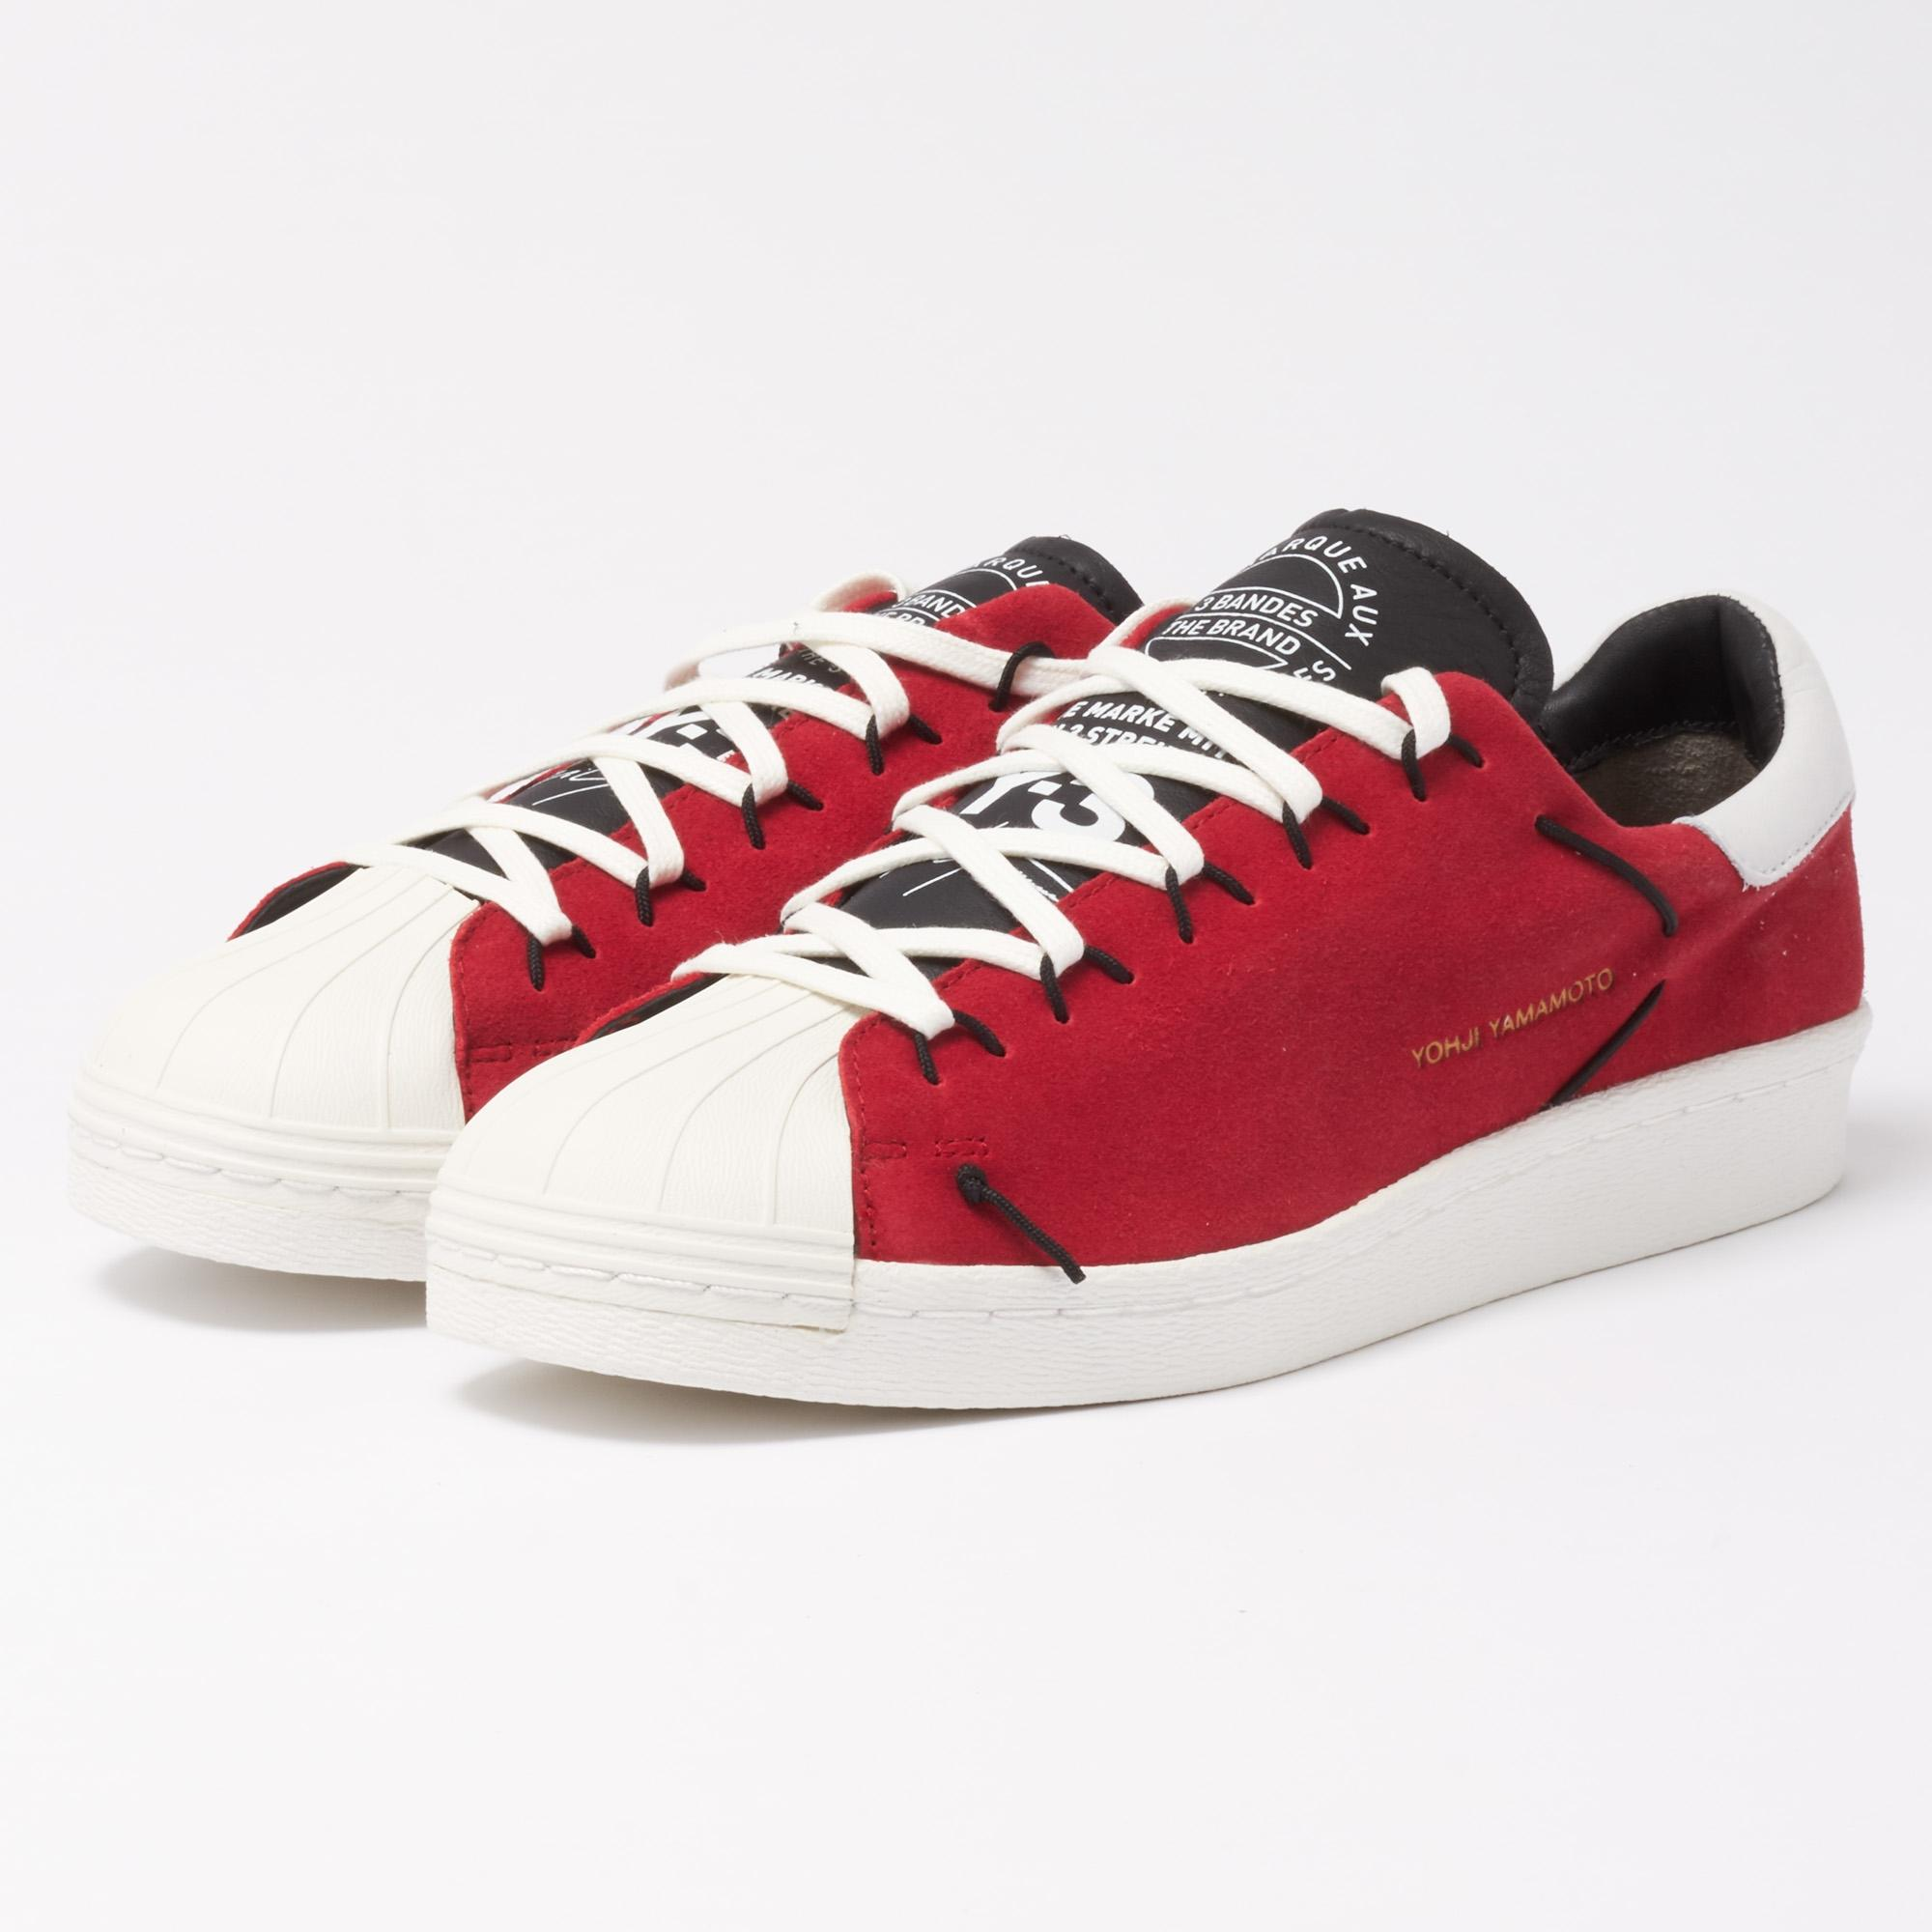 y3 super knot red- OFF 60% - www.butc